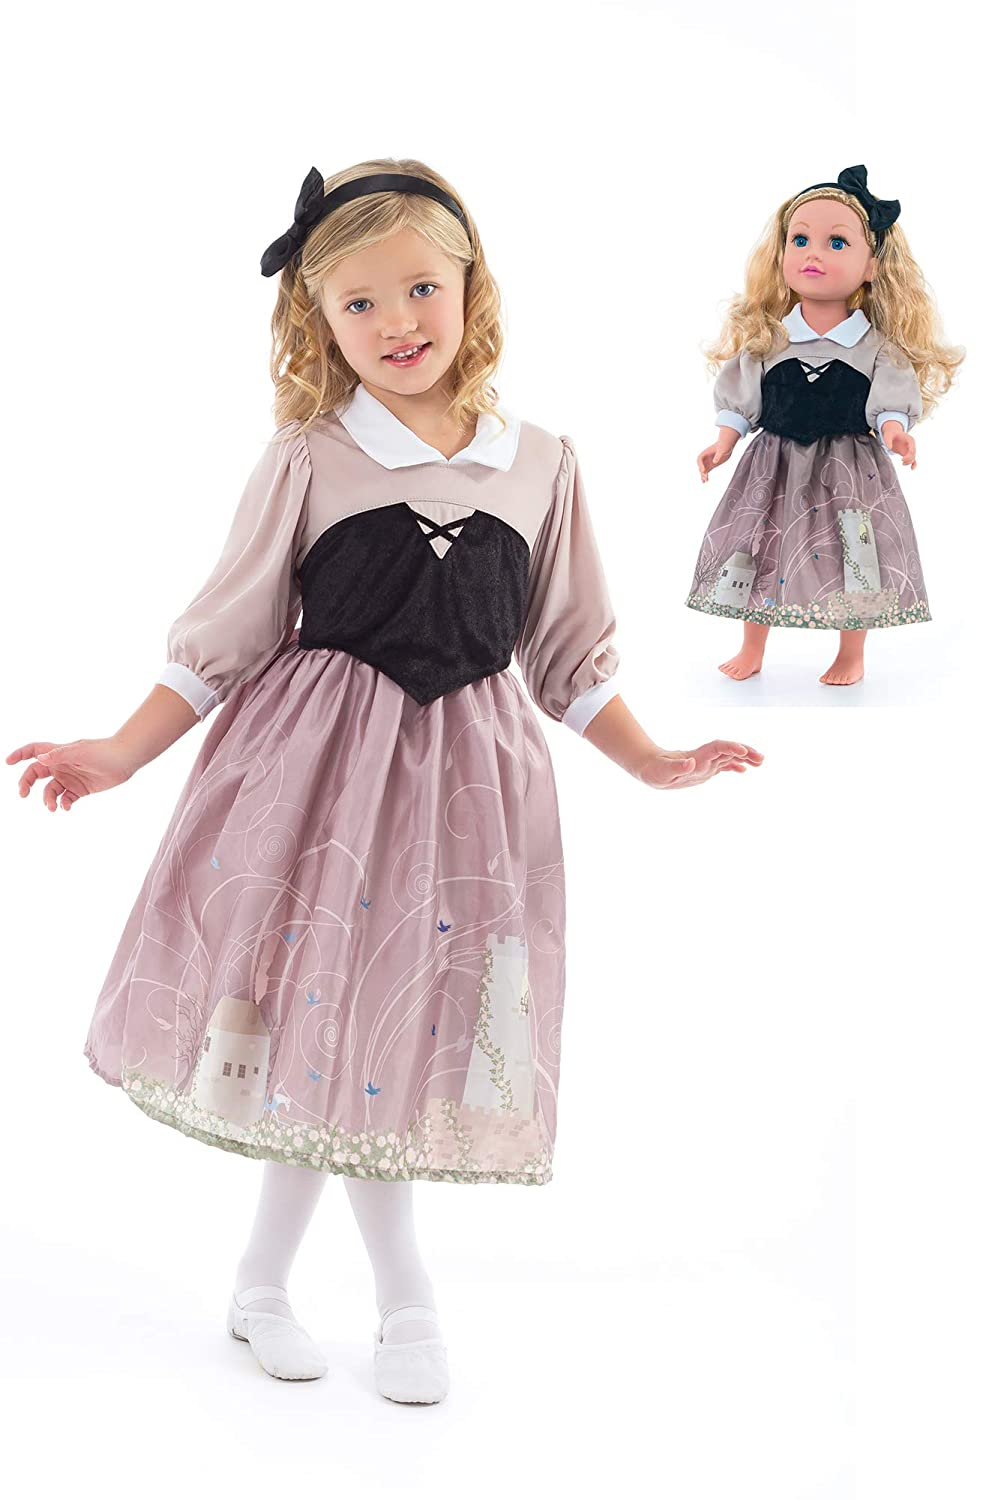 Little Adventures Sleeping Beauty Princess Day Dress Up Costume with Hairbow /& Matching Doll Dress Age 1-3 Small